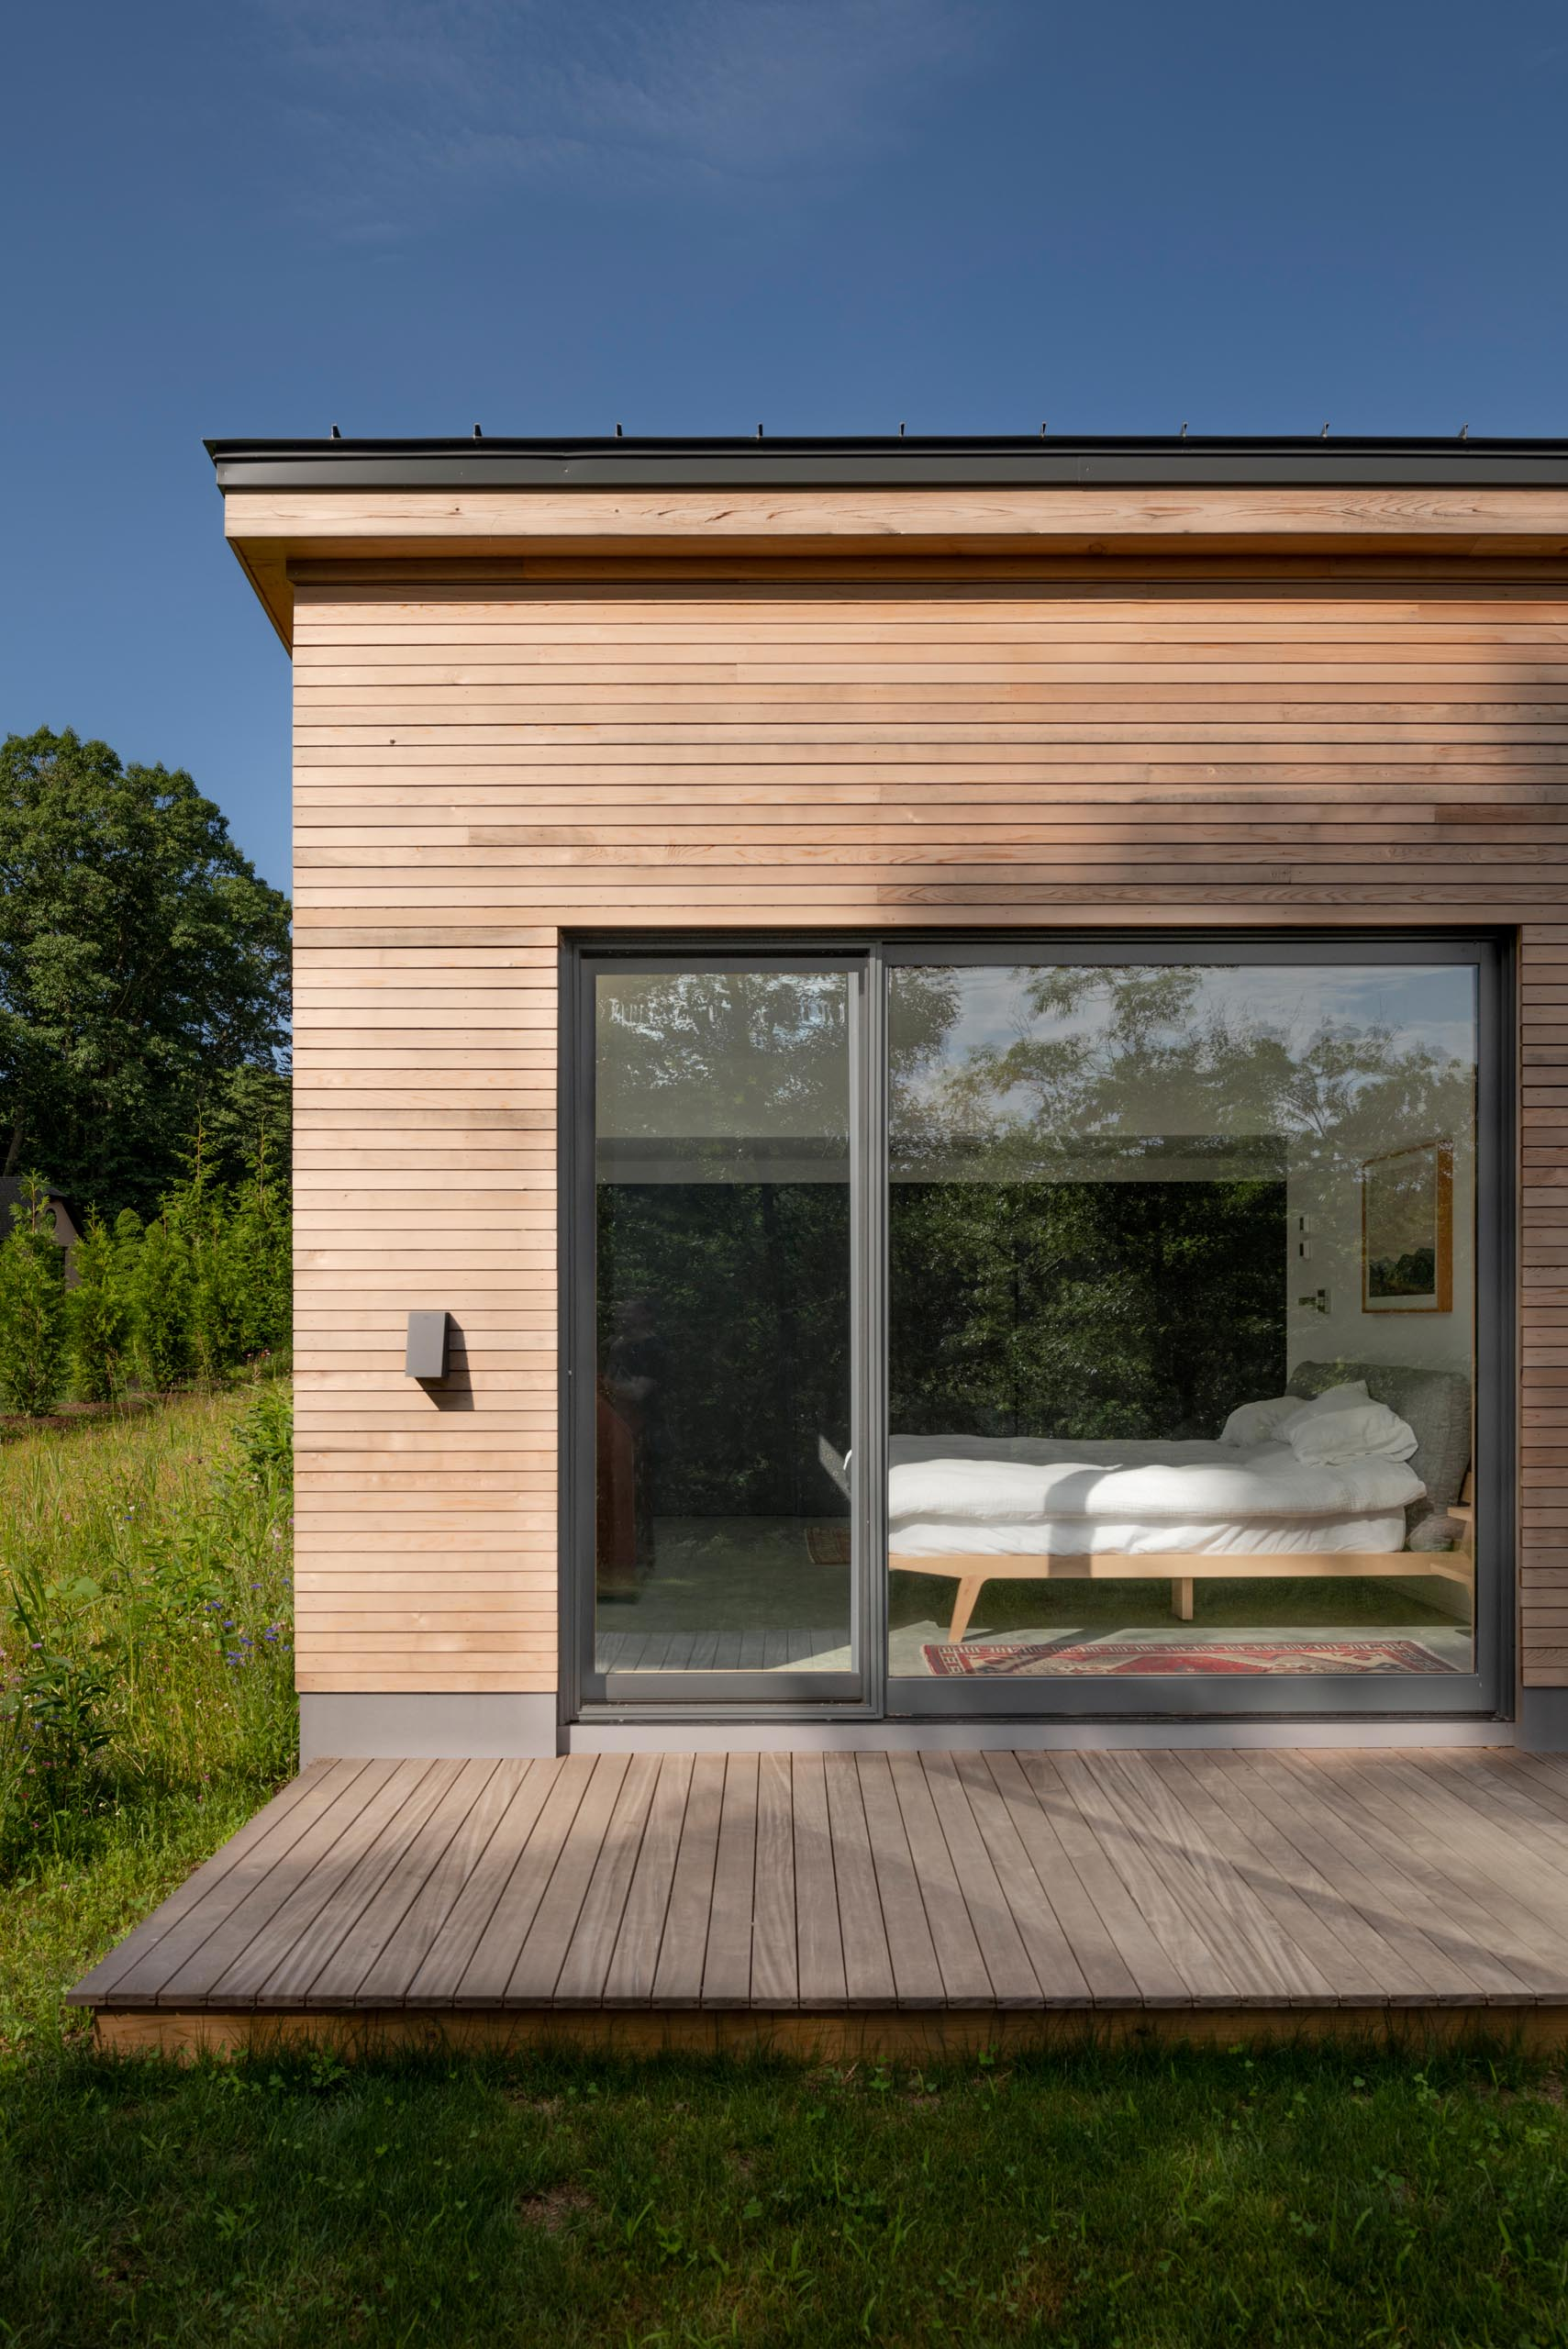 A deck wraps around this modern home, while the charcoal-colored window frames provide a contrast to the wood and complement the metal roof and garage door.